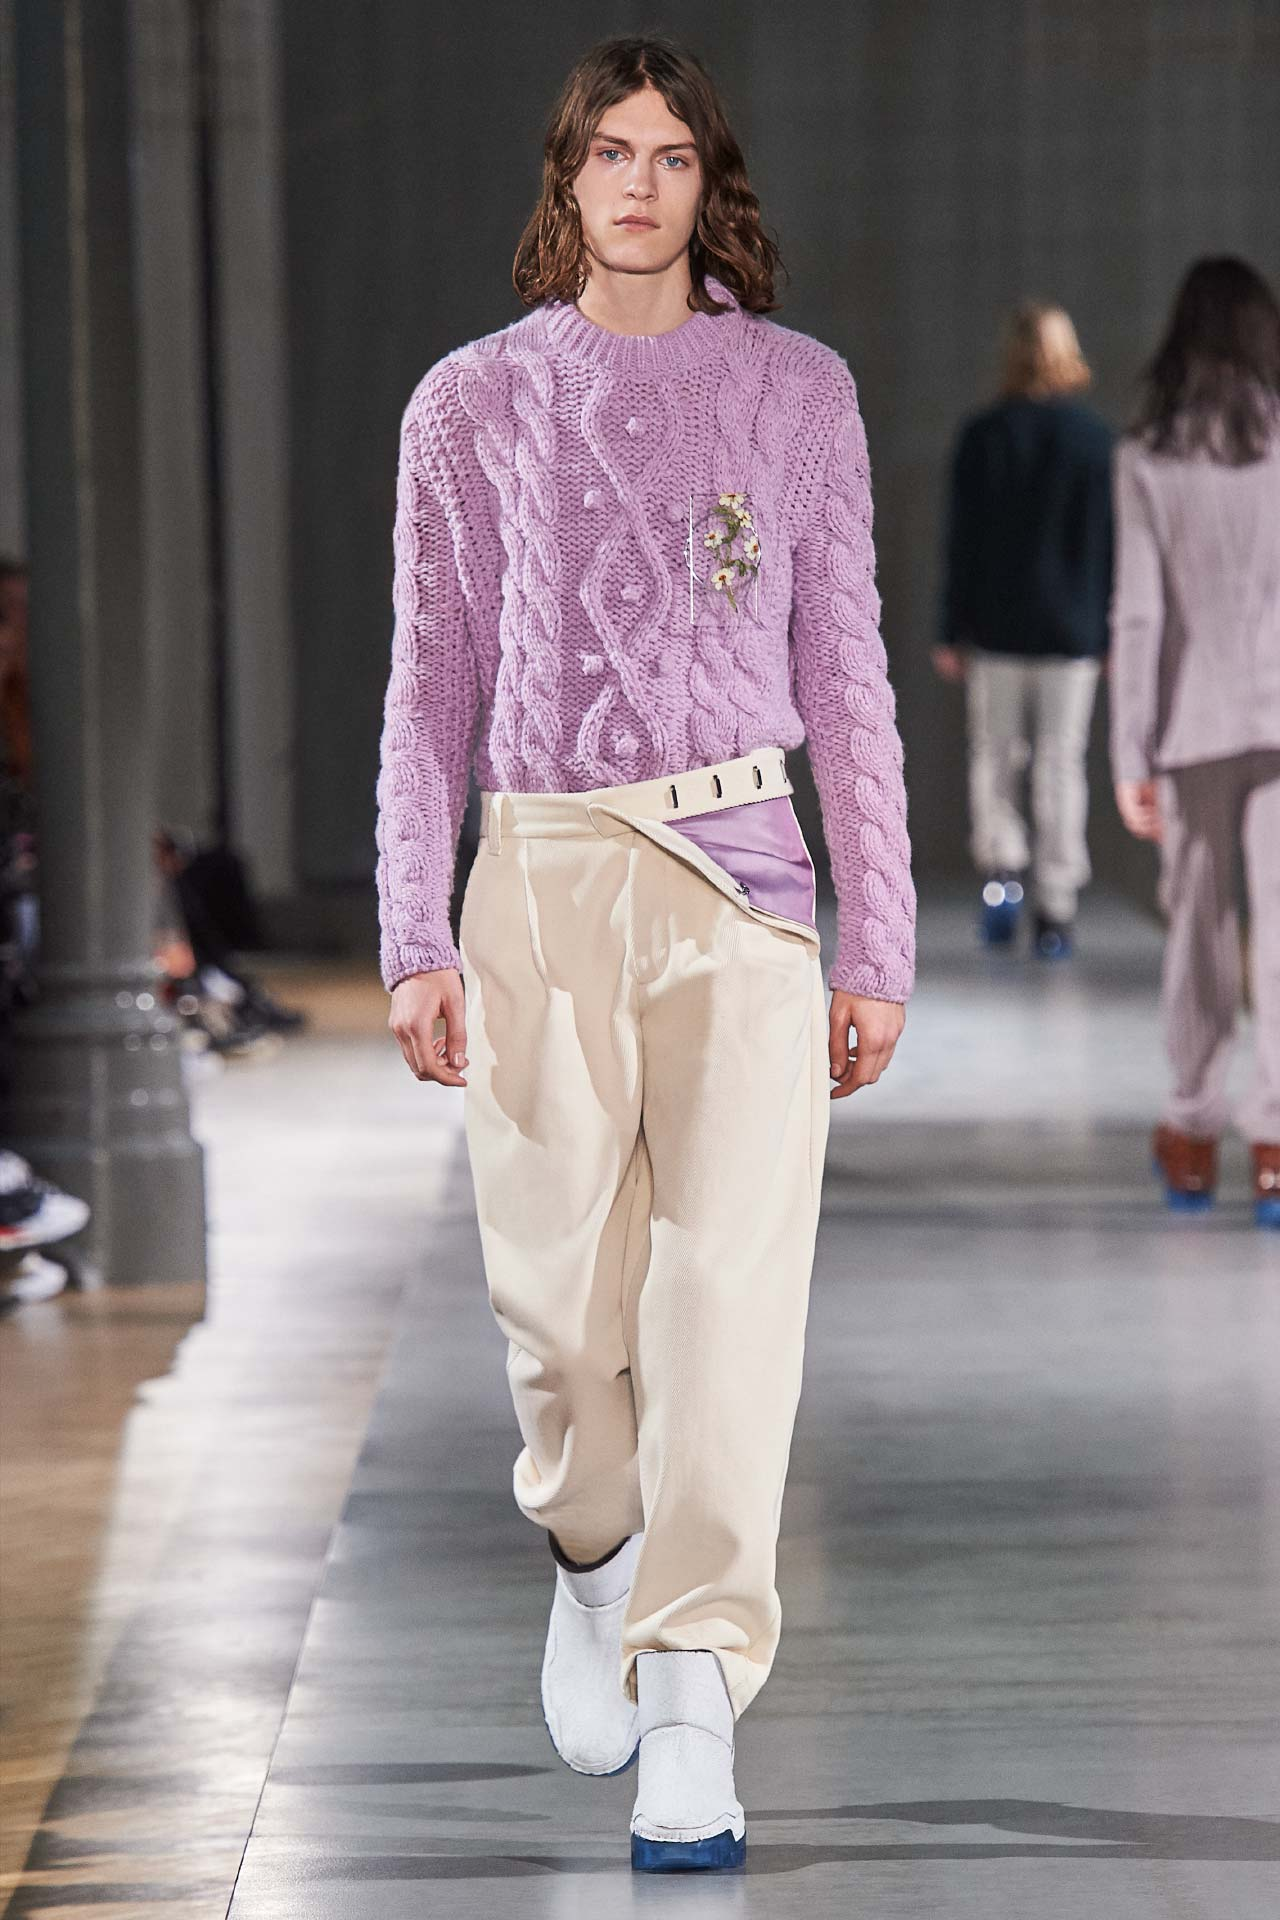 Look Fall/Winter 2019, image 23